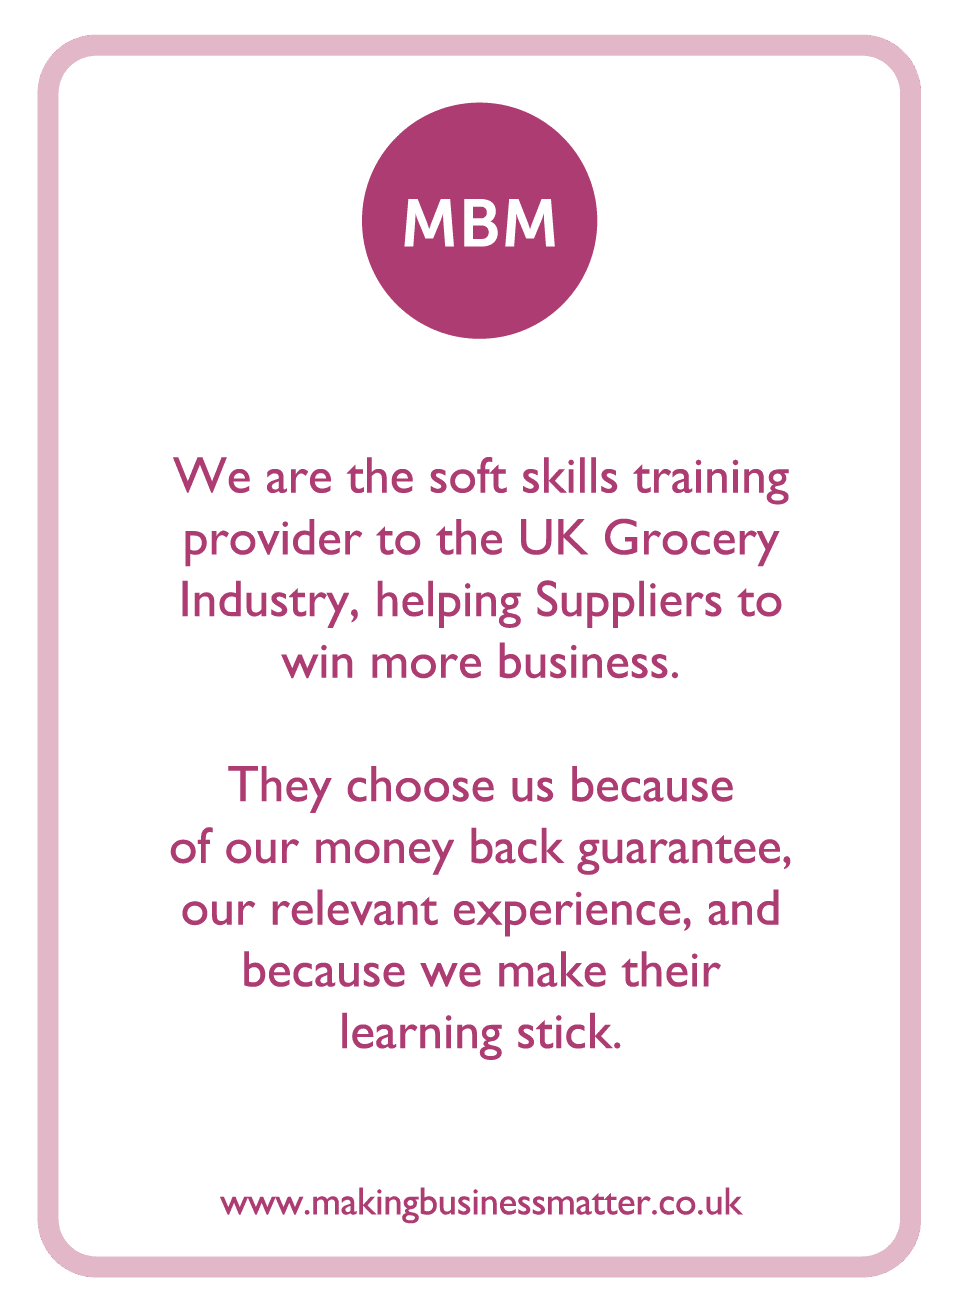 Time management coaching card with MBM brand